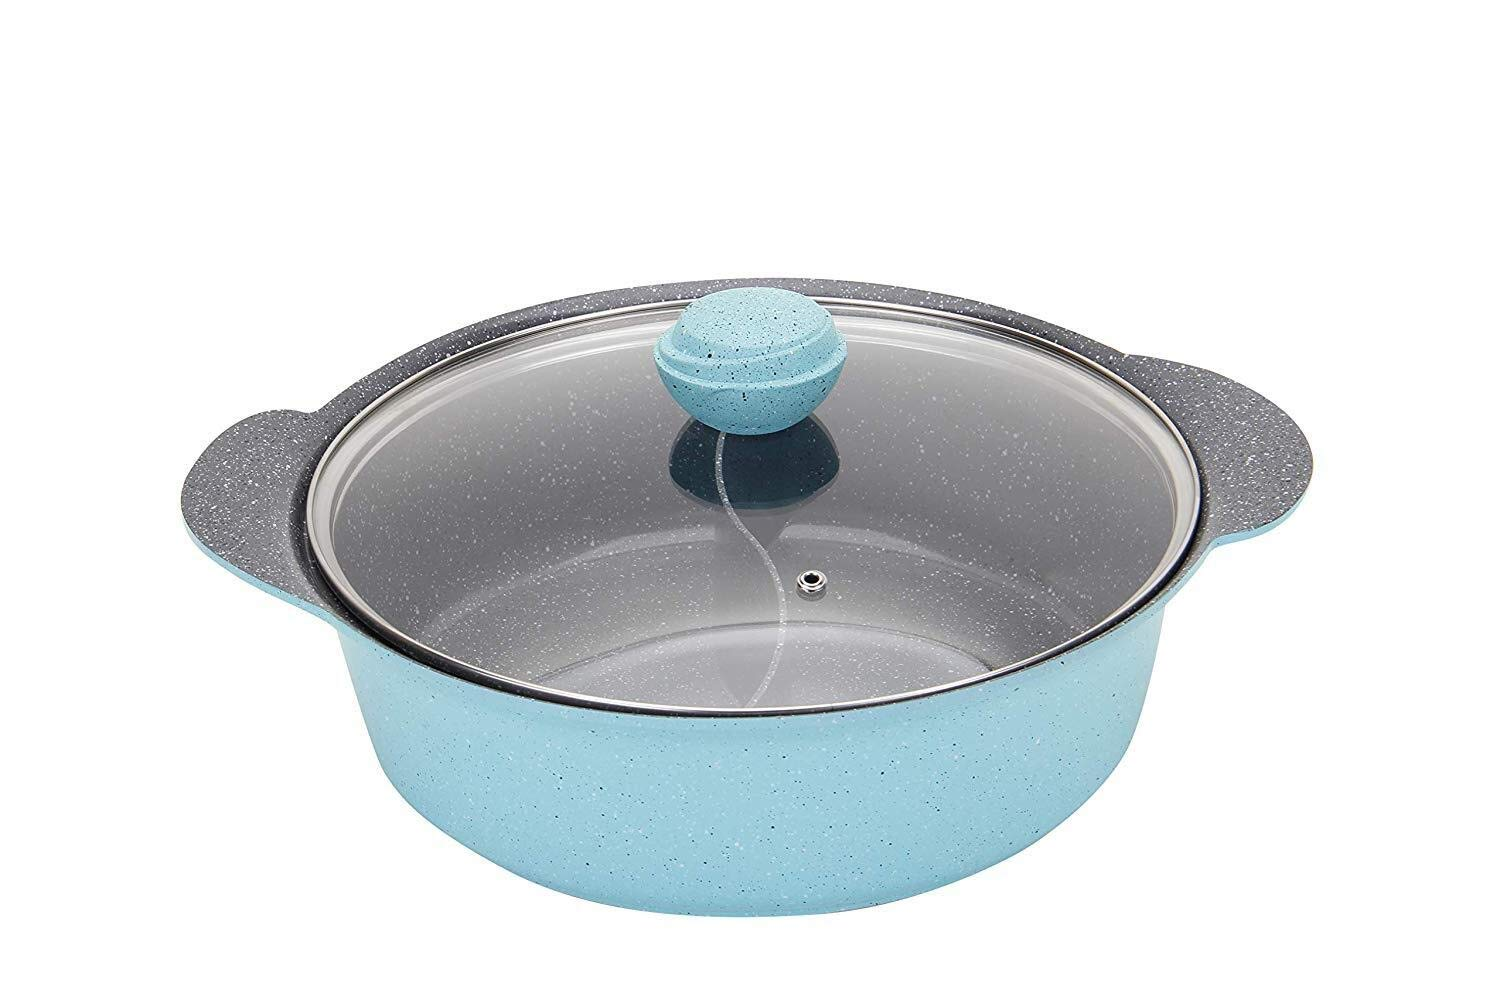 ZPWSNH Yin and Yang Hot Pot, Natural Non-Stick Household Professional Kitchen Utensils, Suitable for All Major Hobs Barbecue Pot (Color : Blue) by ZPWSNH